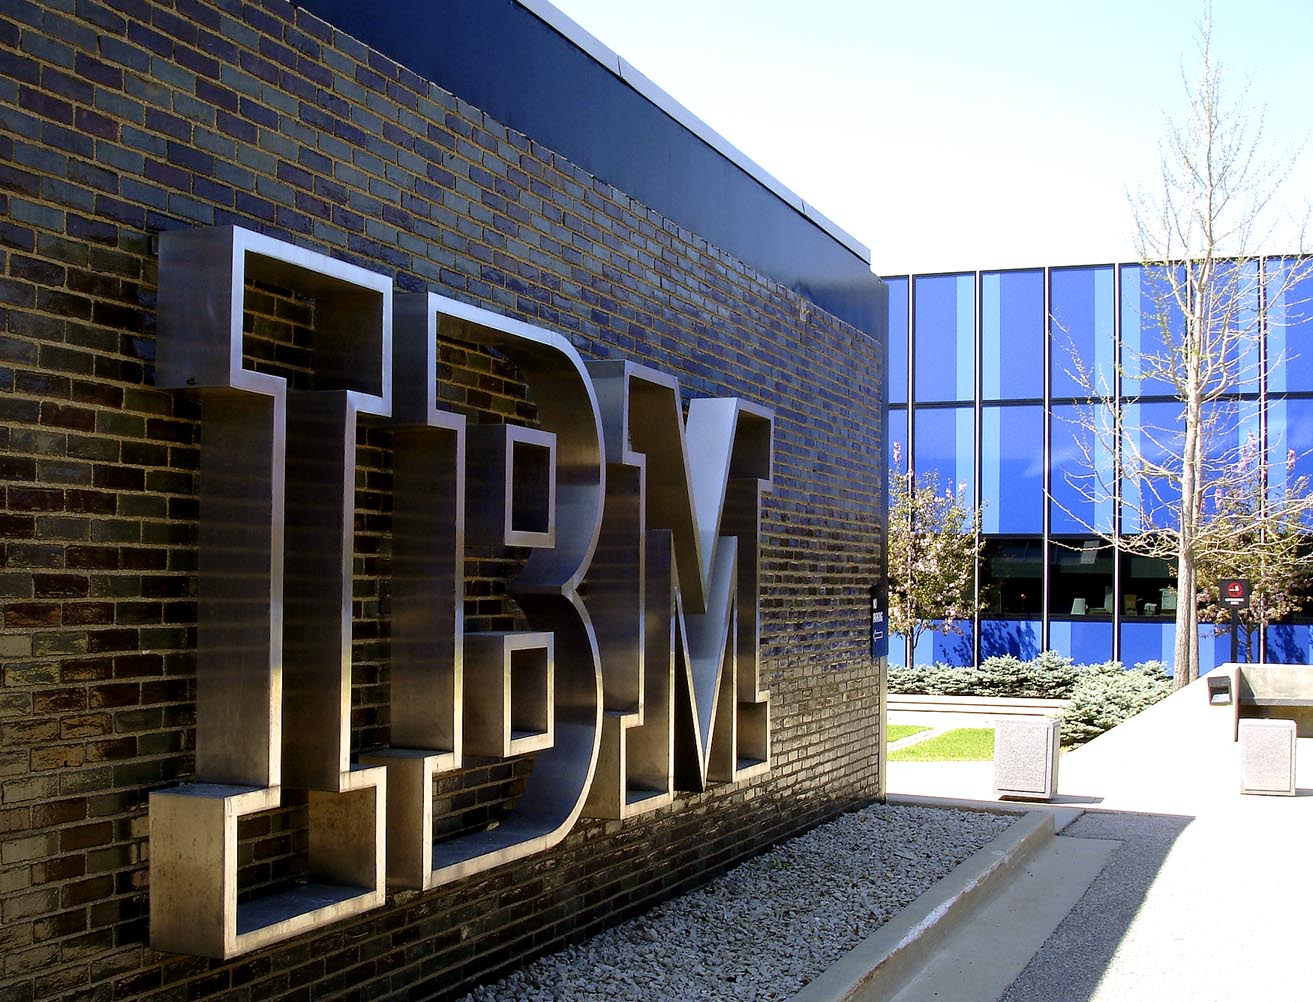 IBM to put $3 billion in 'Internet of Things' unit